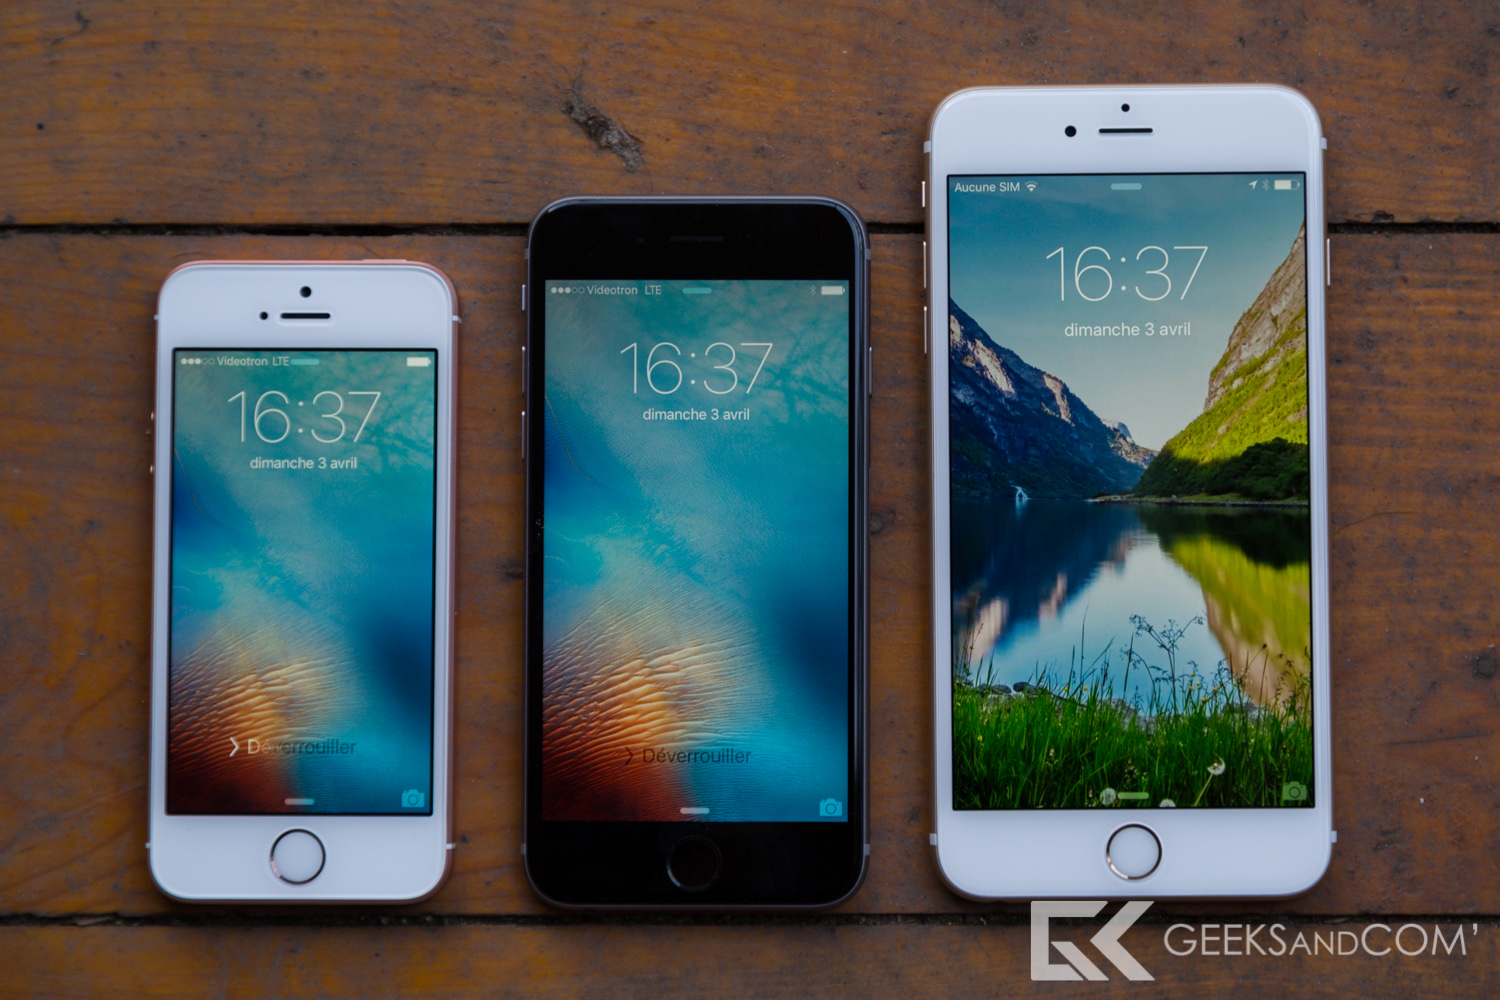 iPhone SE - iPhone 6S - iPhone 6S Plus - Test Geeks and Com -4